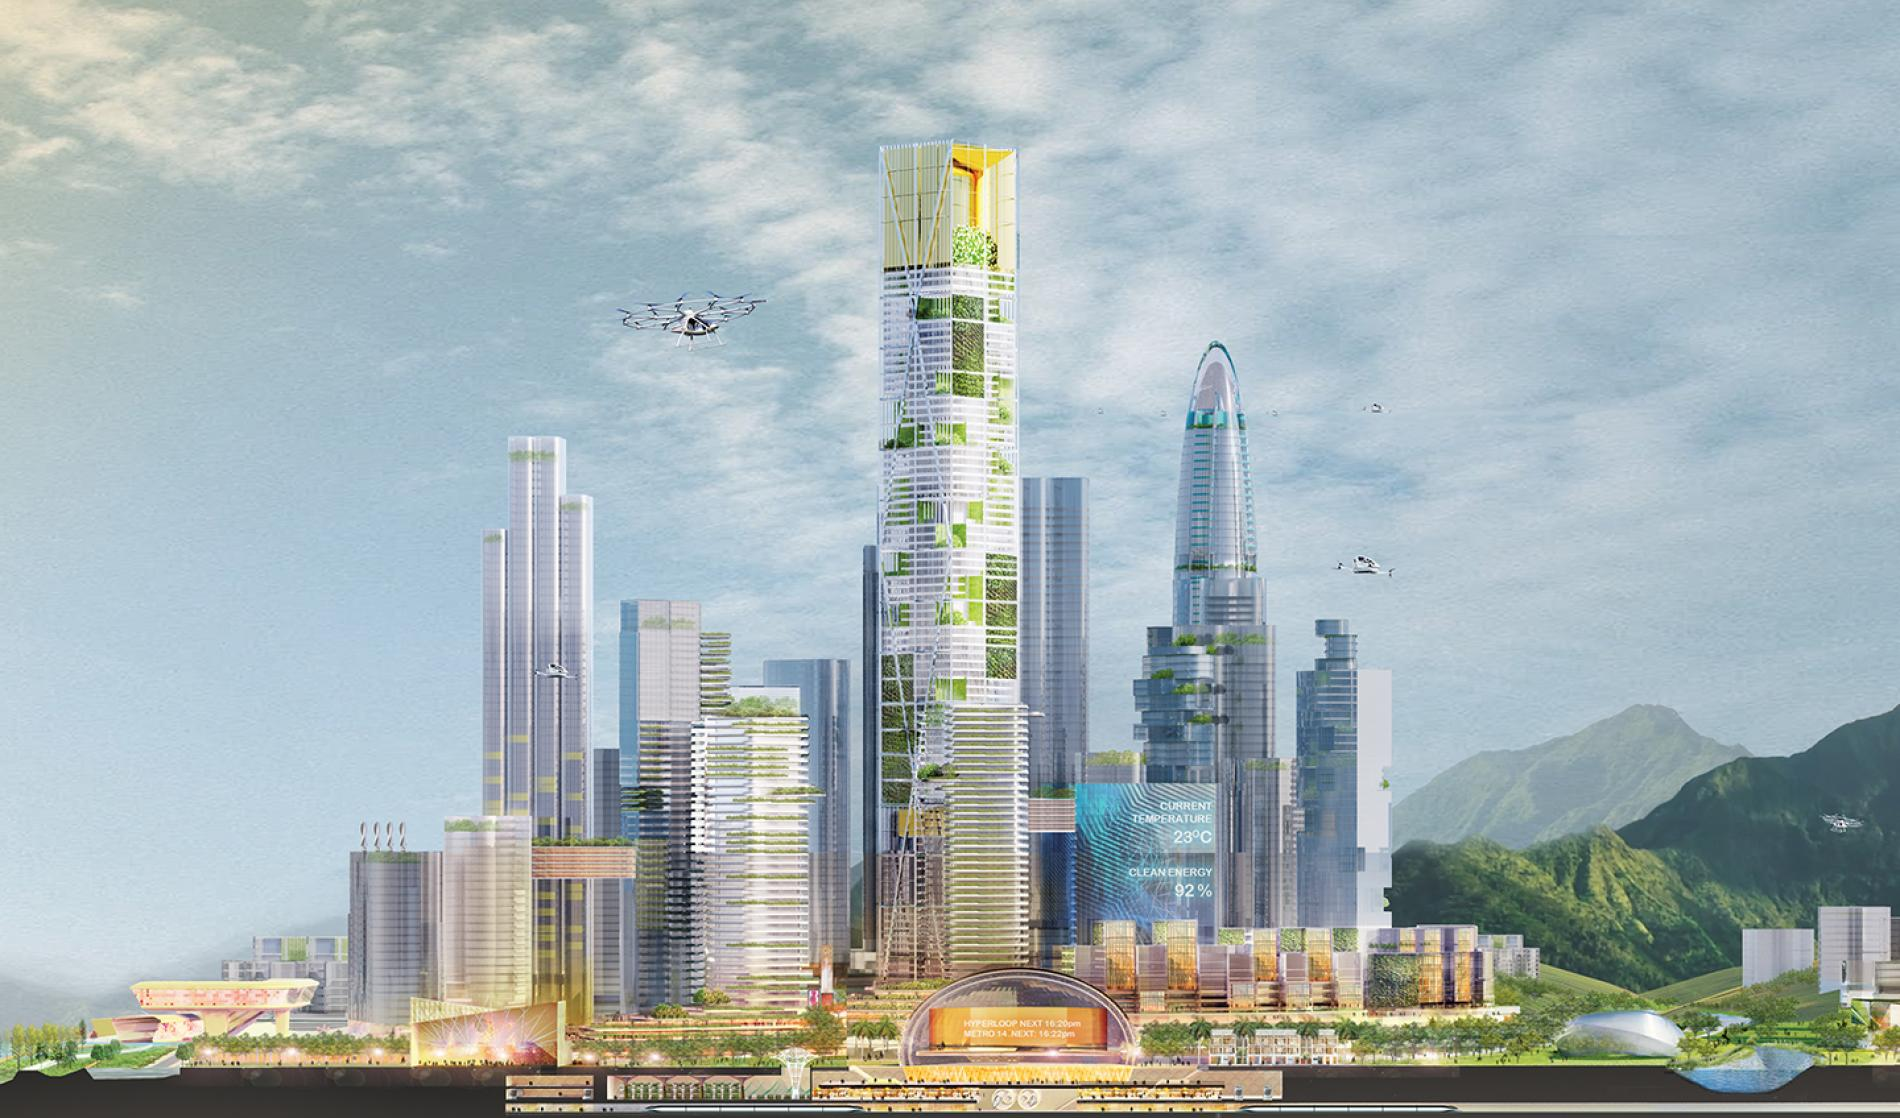 Designing a city of the future